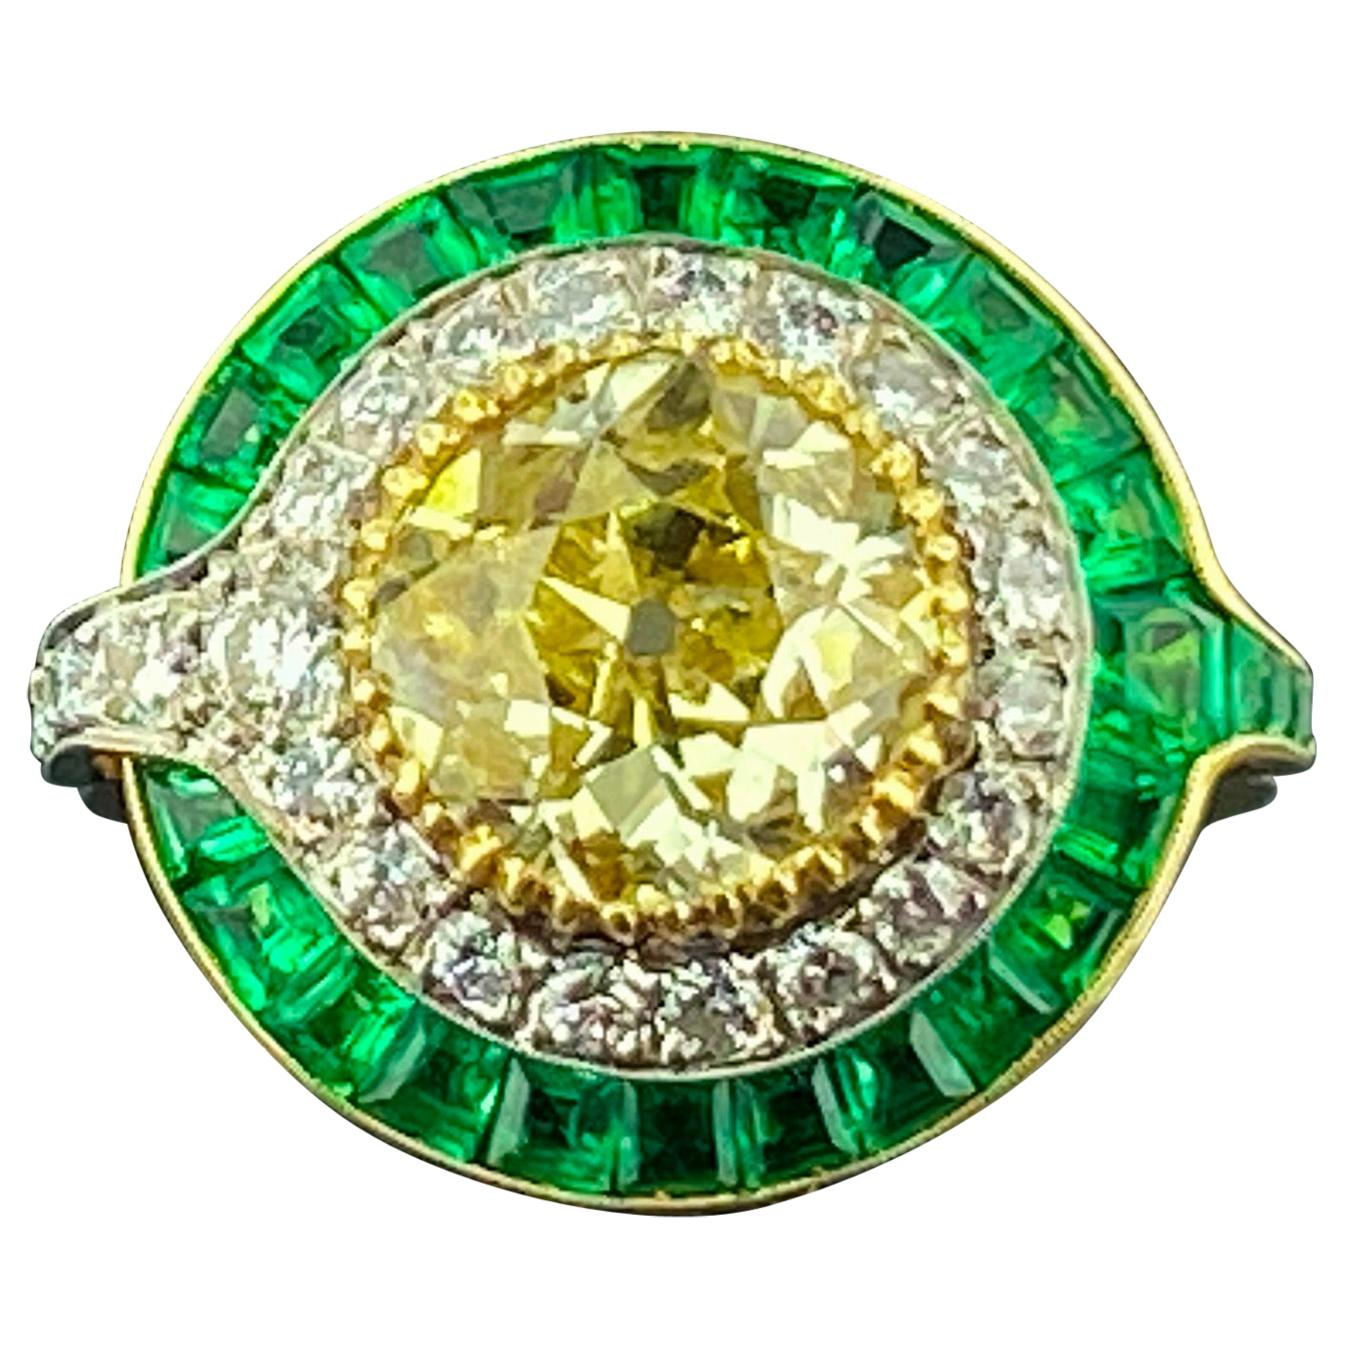 Diamond and Emerald Ring in 18 Karat White and Yellow Gold